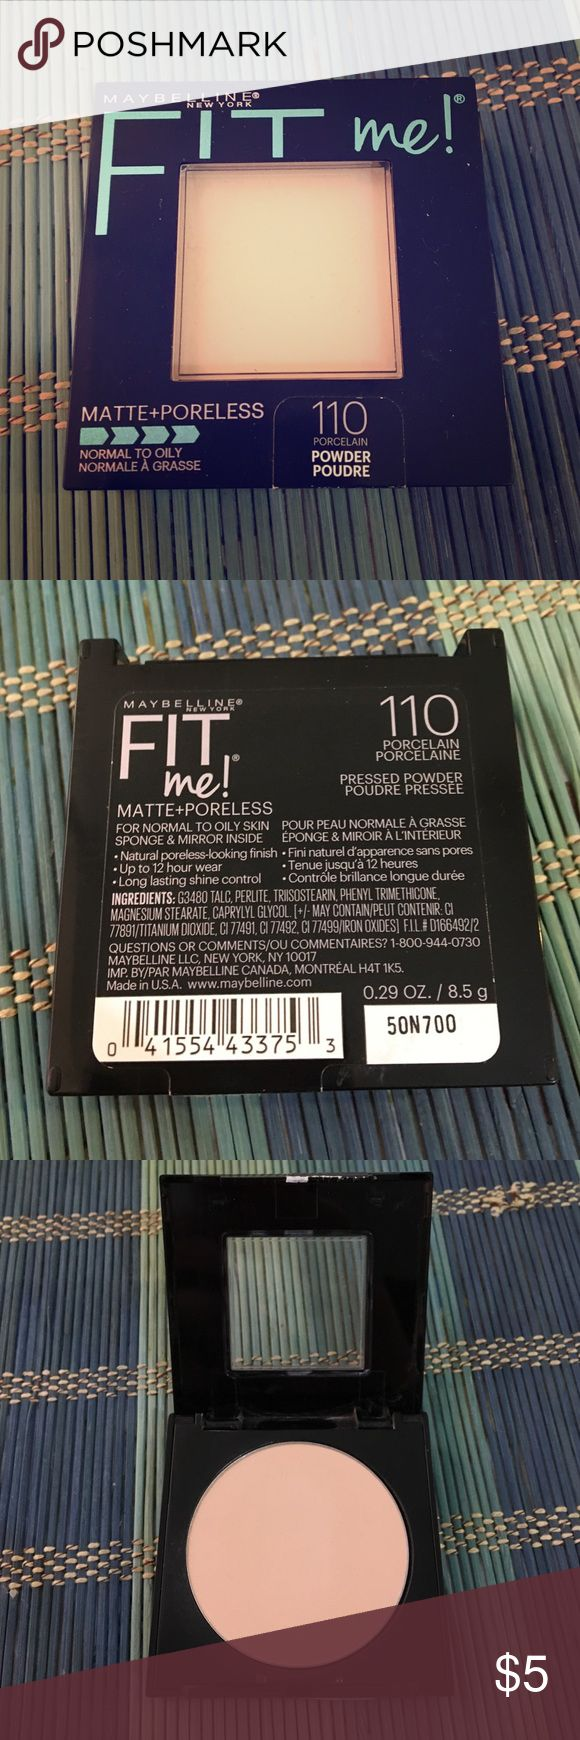 """Maybelline FIT Me Powder Foundation! Pressed powder foundation in the shade """"110- Porcelain"""". Used a few times but in FANTASTIC condition! I've kept the sponge it comes with for sanitary purposes. If you have any questions, please feel free to ask them below 😍 Happy shopping, my lovelies! ❤️🛍❤️ Maybelline Makeup Face Powder"""